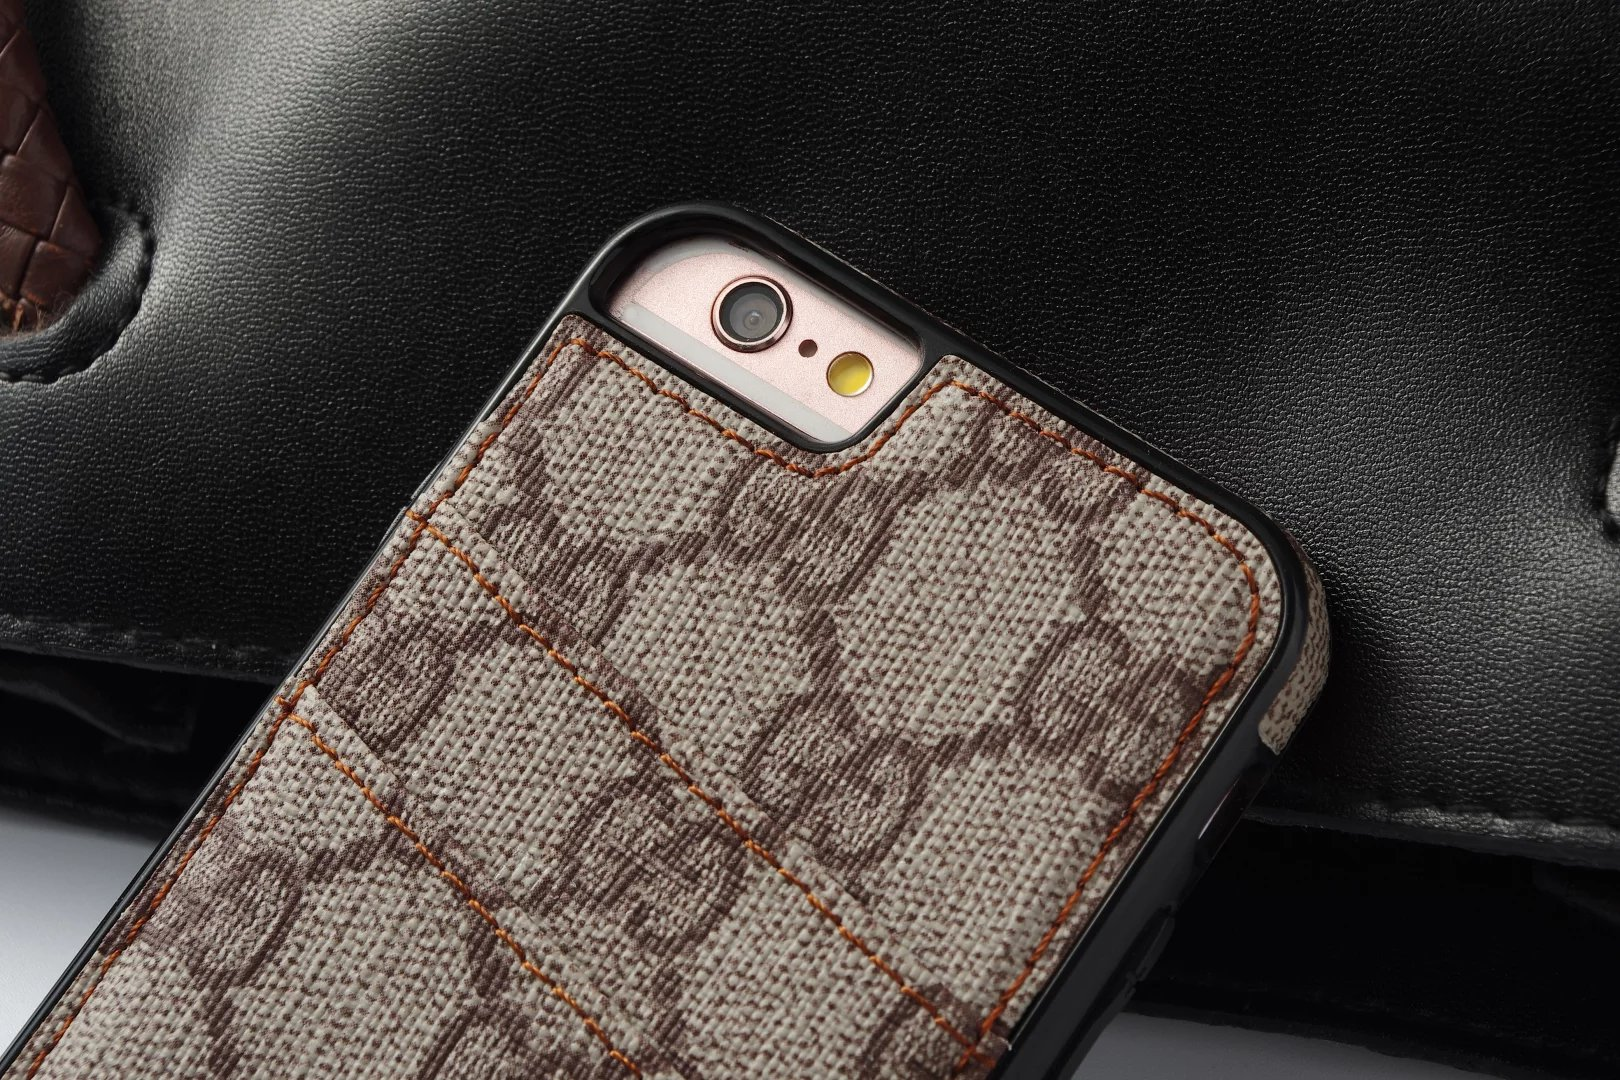 iphone 8 Plus full case phone cover iphone 8 Plus Louis Vuitton iphone 8 Plus case phone covers for iphone apple store iPhone 8 Plus cases apple iphone covers i phone cases coolermaster elite o plus case